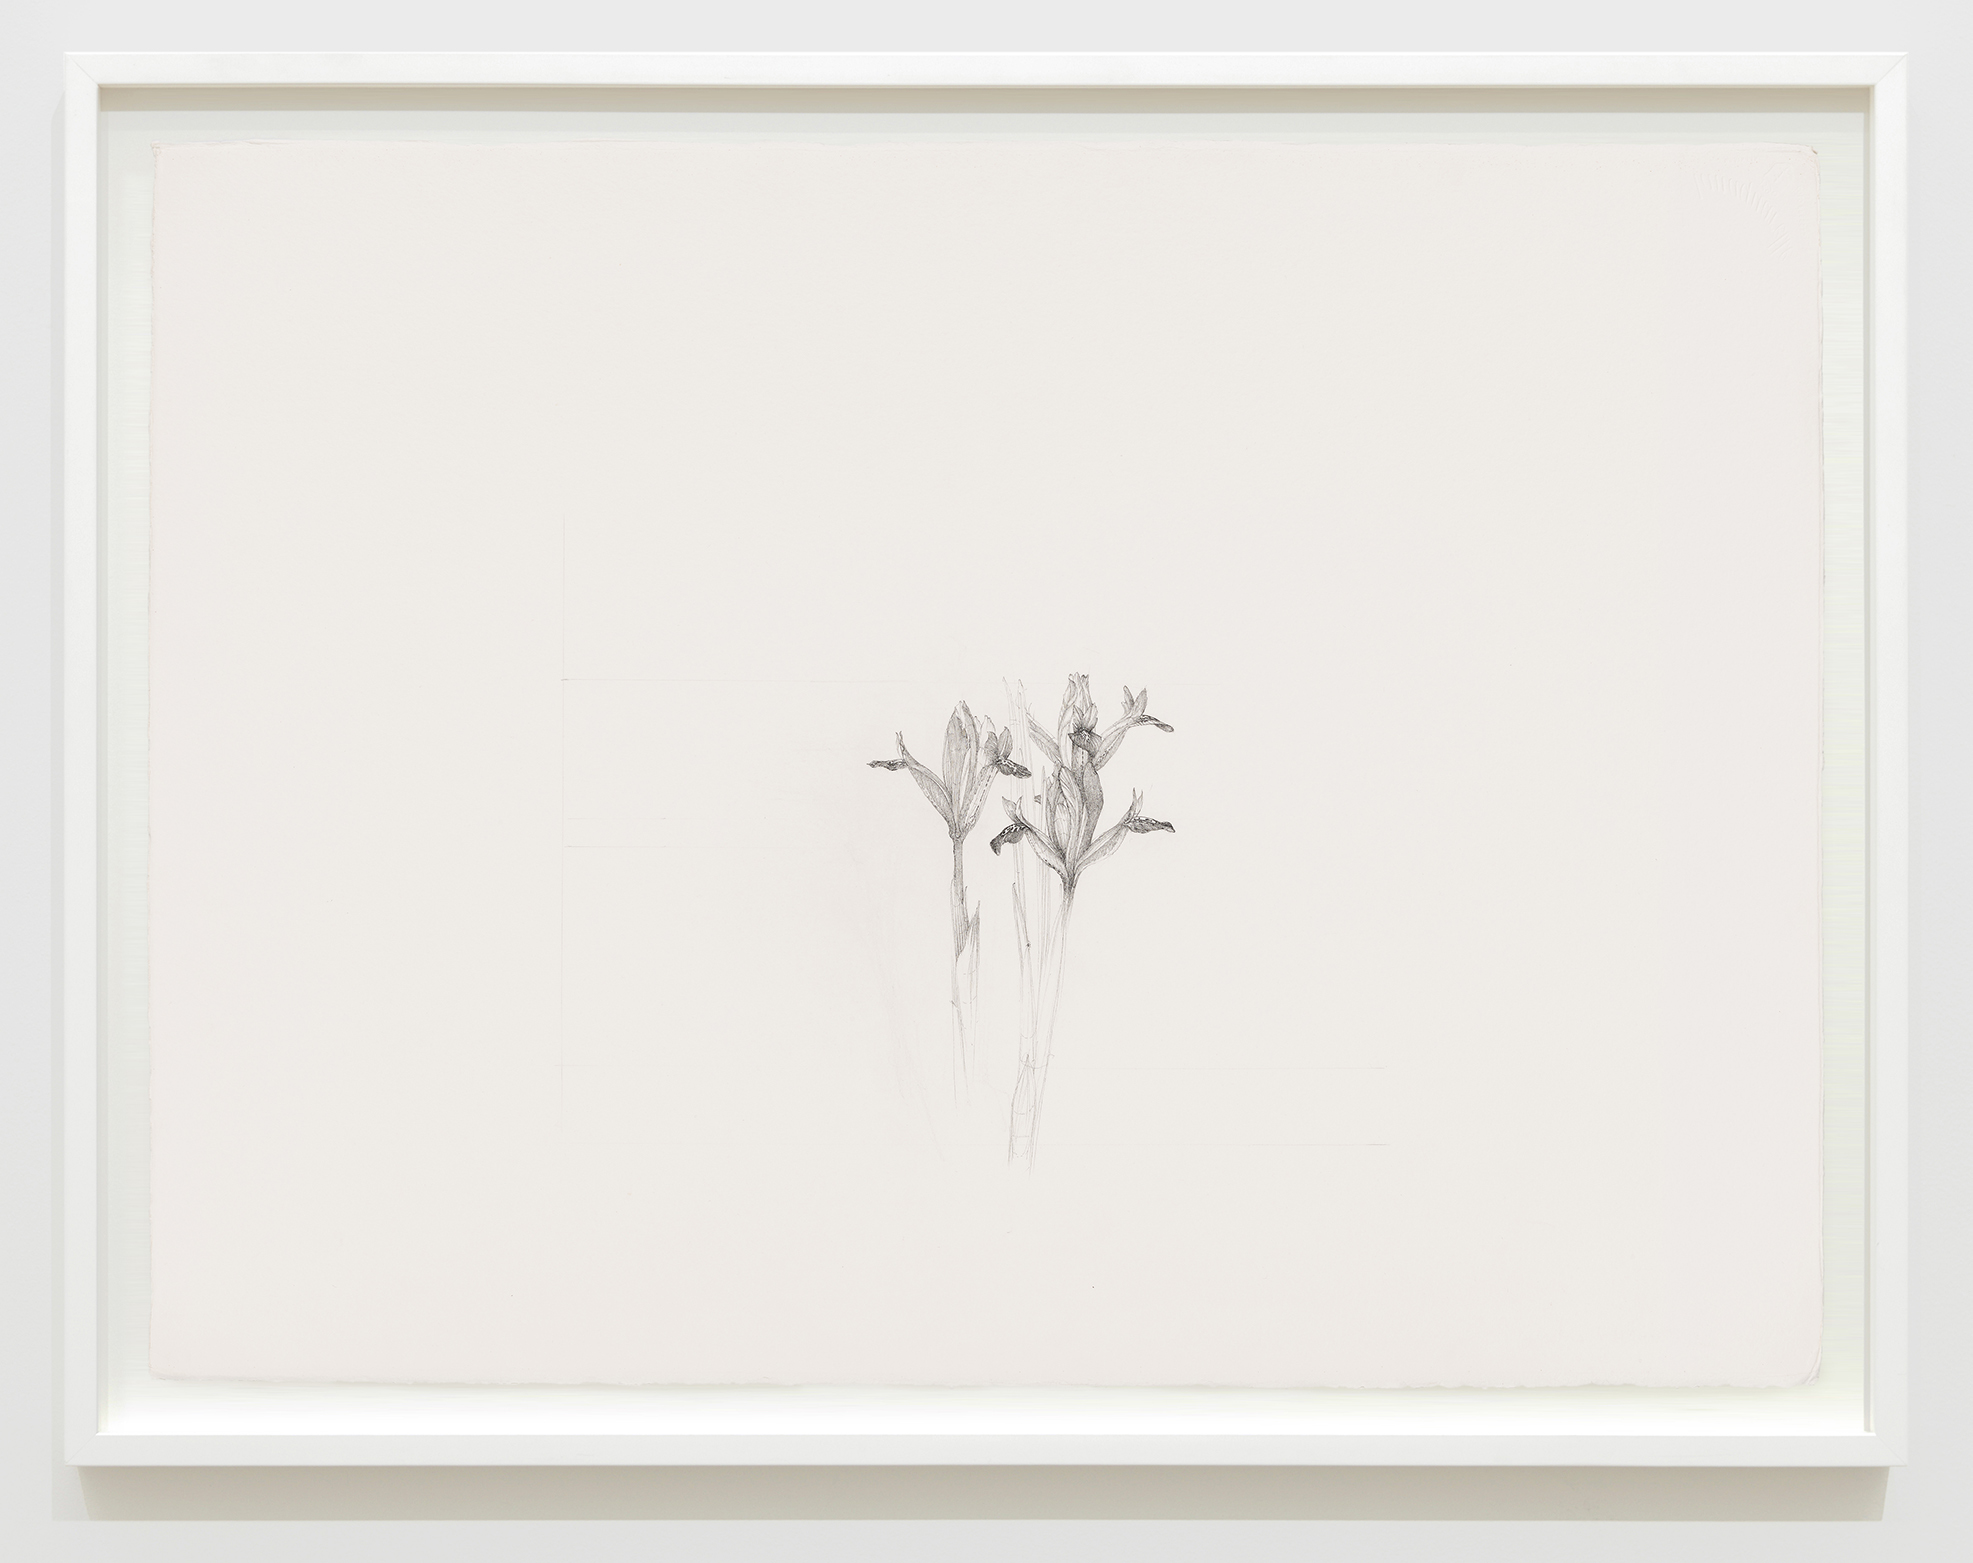 Charmian Johnson, not titled, unknown date, ink on paper, 26 x 34 in. (65 x 85 cm) by